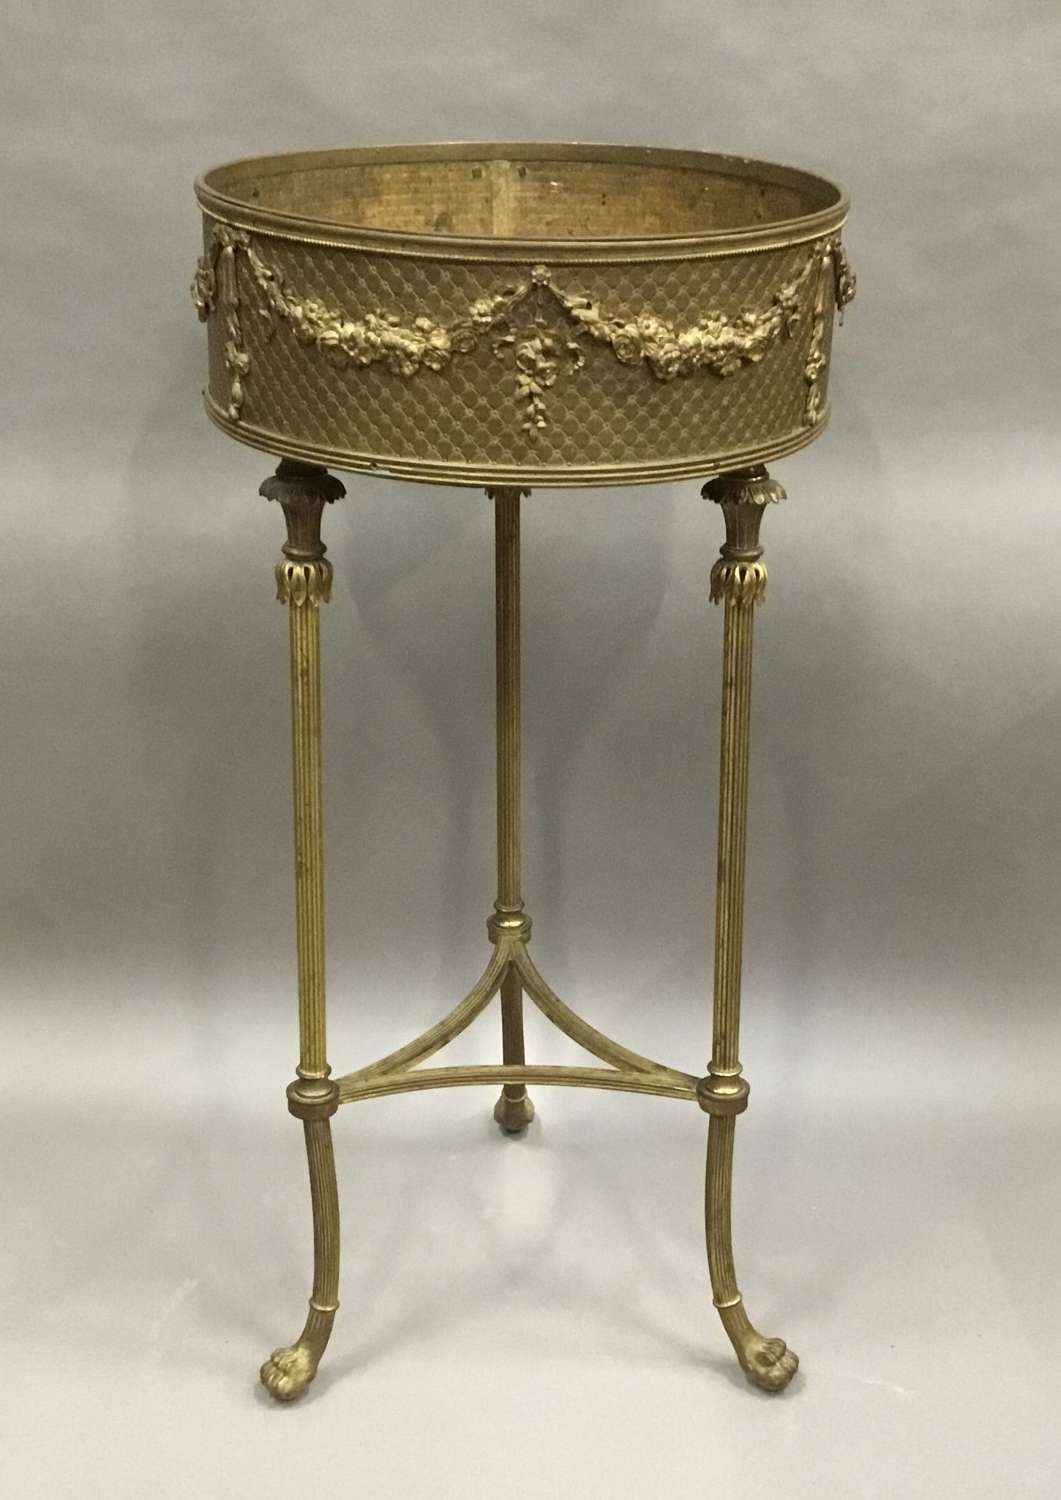 C19th French gilt brass jardiniere